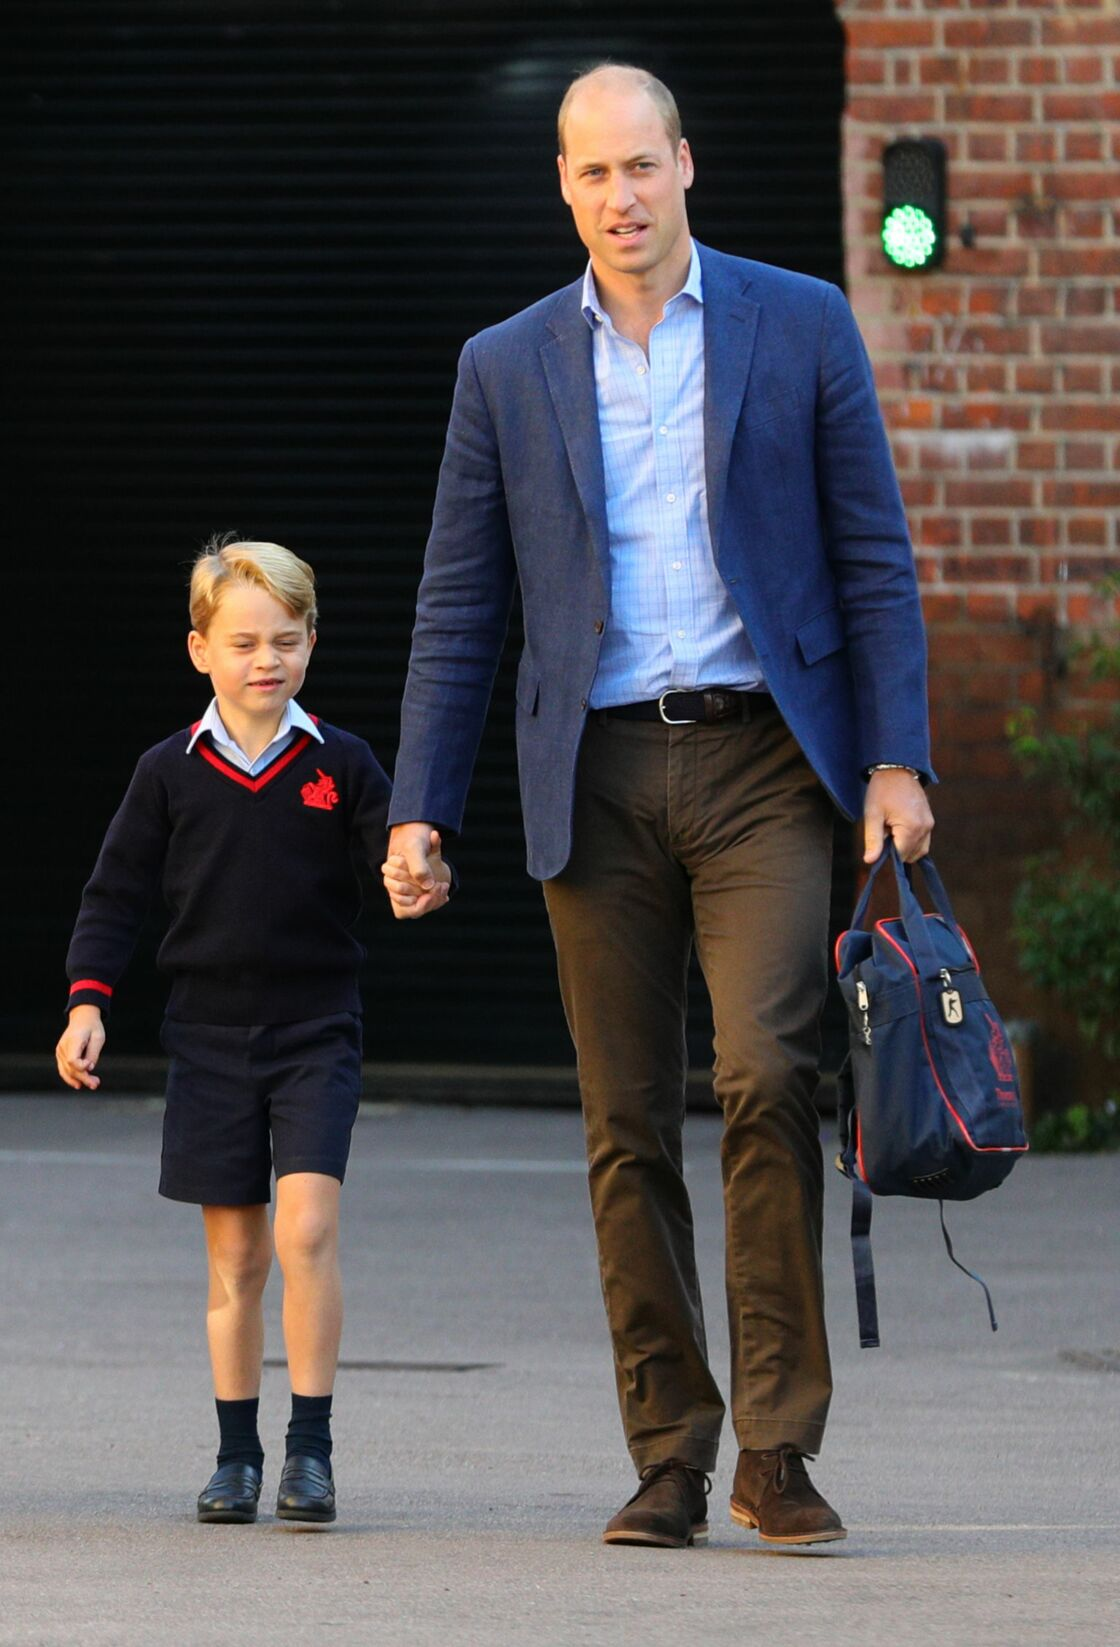 Le prince George et son papa, le prince William, à la rentrée des classes de Thomas's Battersea à Londres, le 5 septembre 2019.